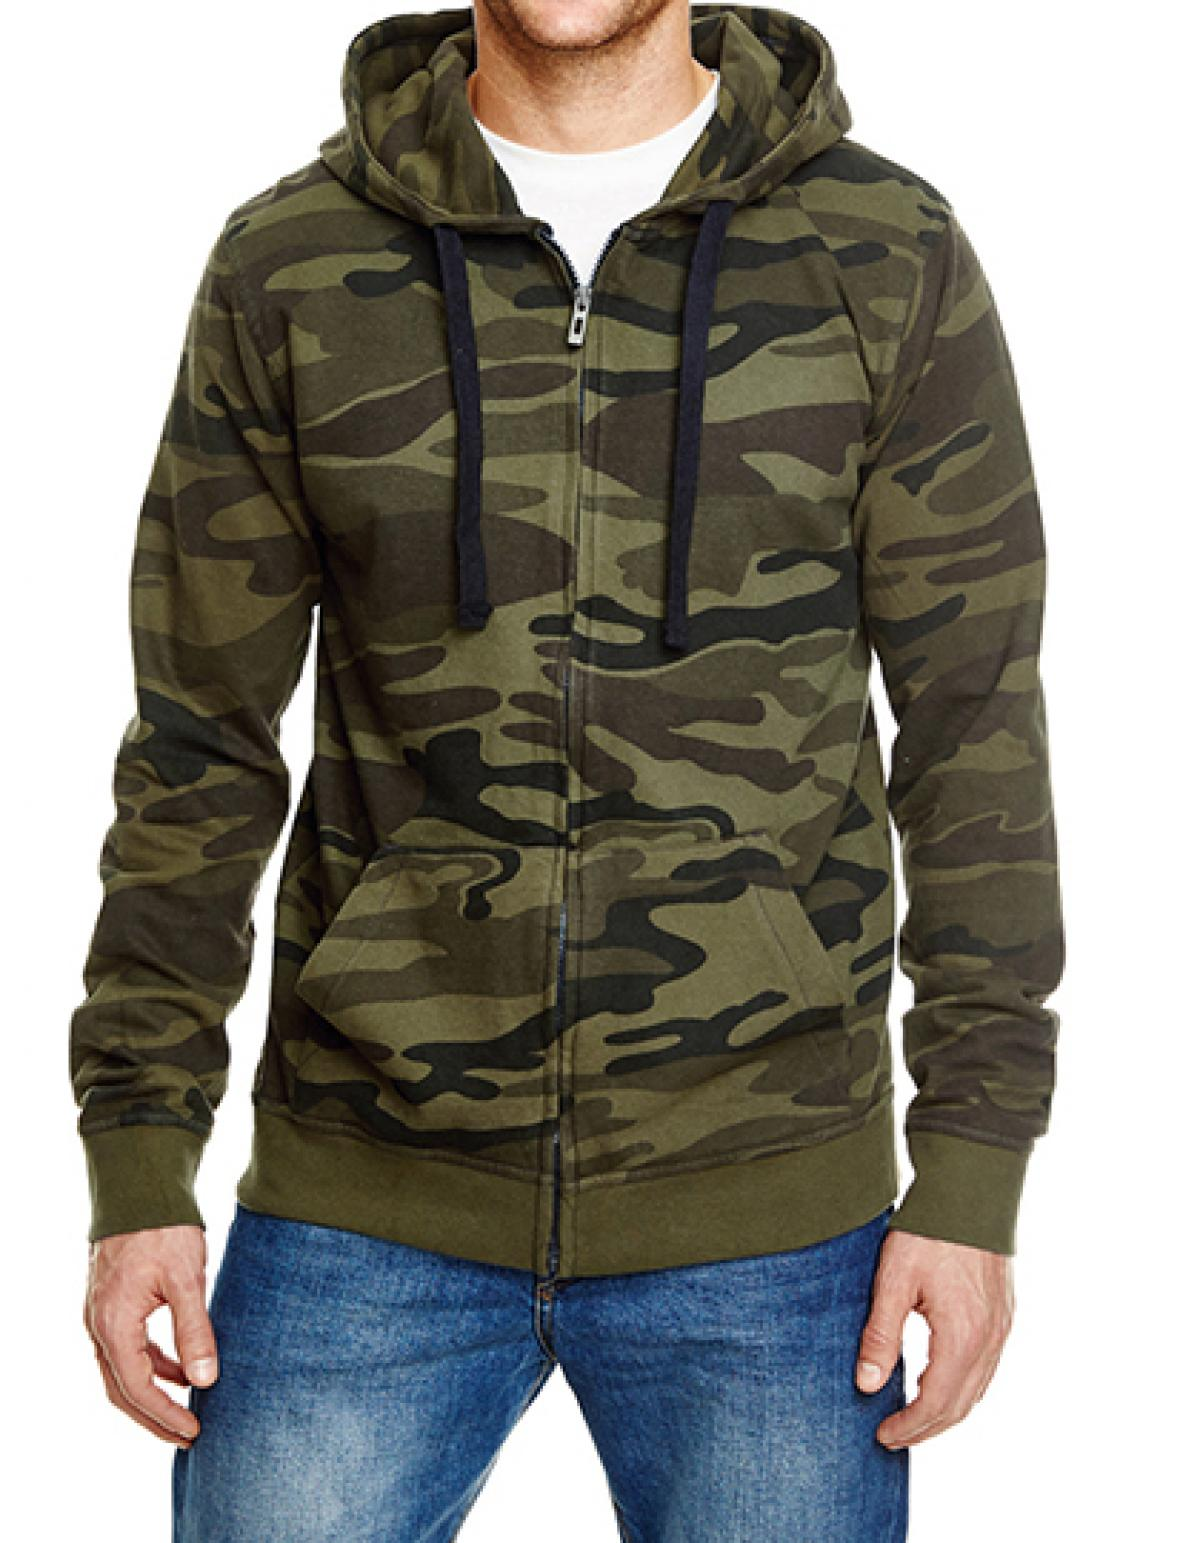 Burnside 8615 | Herren Jacke Full Zip Camo Hooded Fleece Jacket